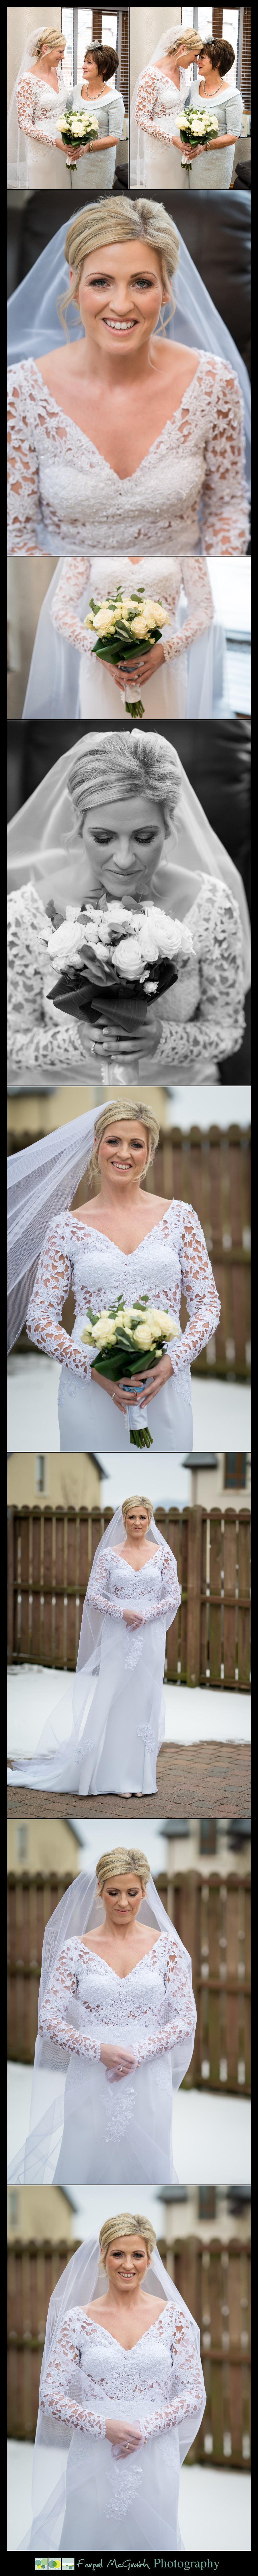 Great Northern Hotel Bundoran Winter Wedding stunning bride portraits